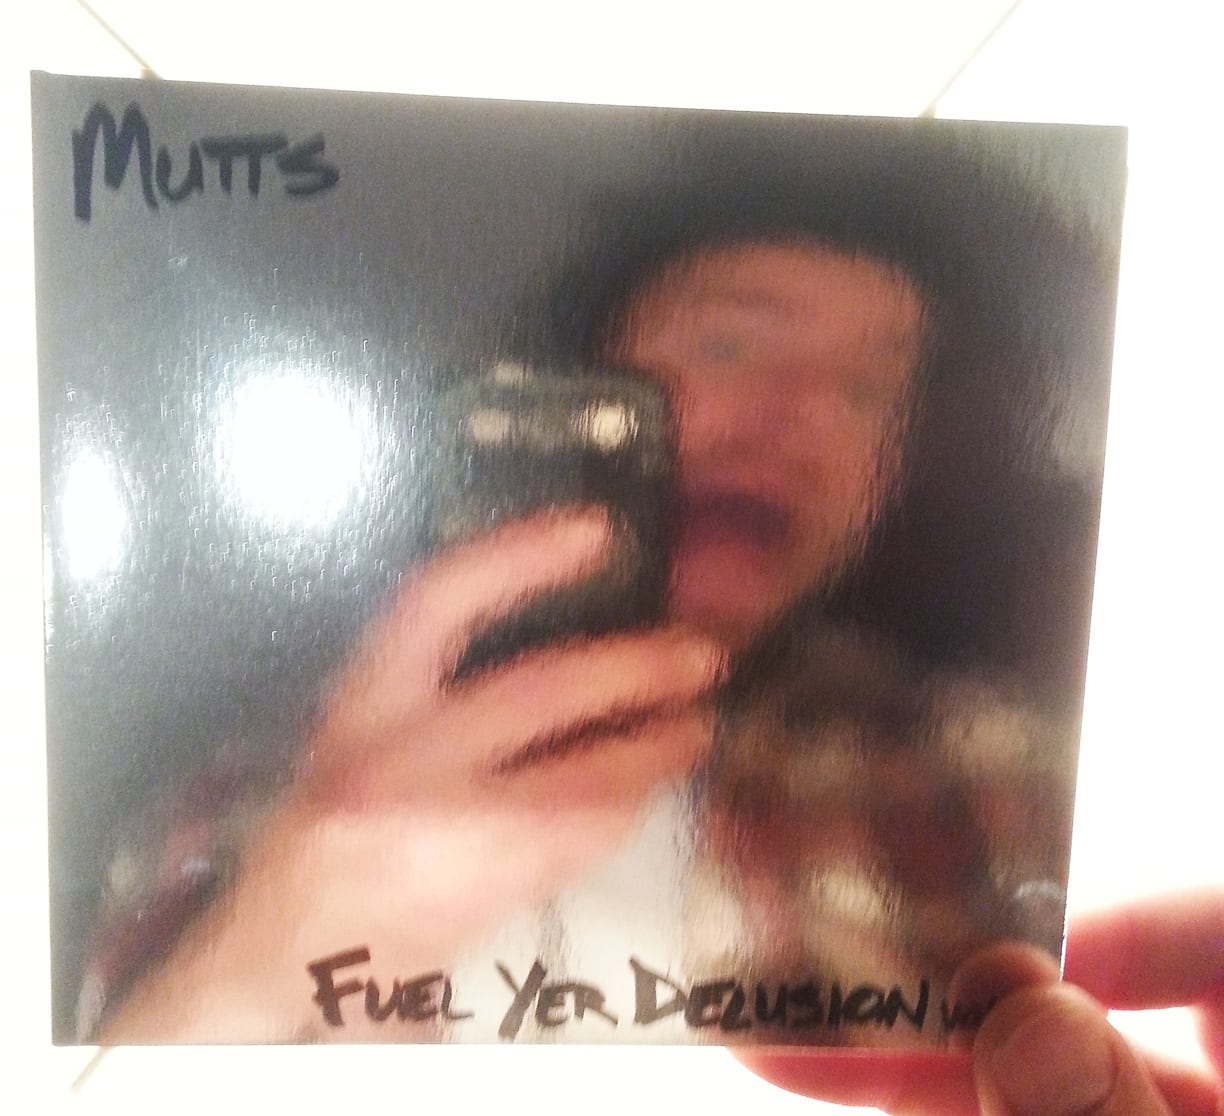 Mutts-Fuel_Yer_Delusion_vol_4-CD-Front